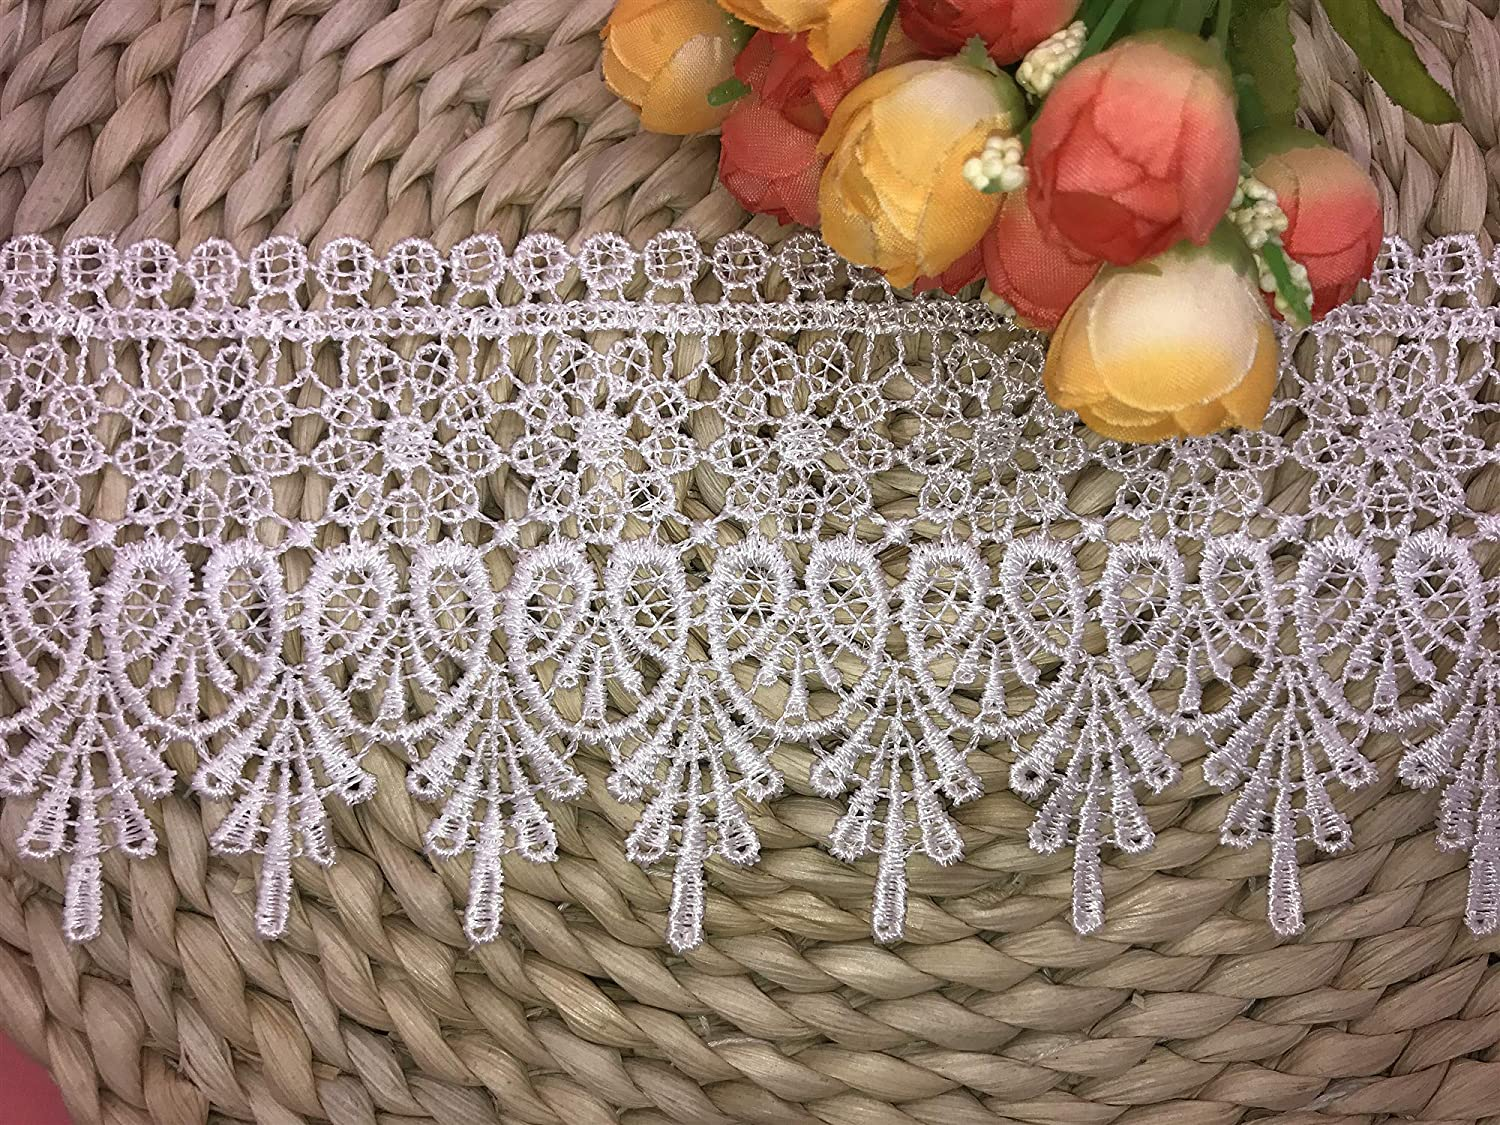 9CM Width Europe Chips Pattern Inelastic Embroidery Lace Trim,Curtain Tablecloth Slipcover Bridal DIY Clothing//Accessories. 4 Yards in one Package White